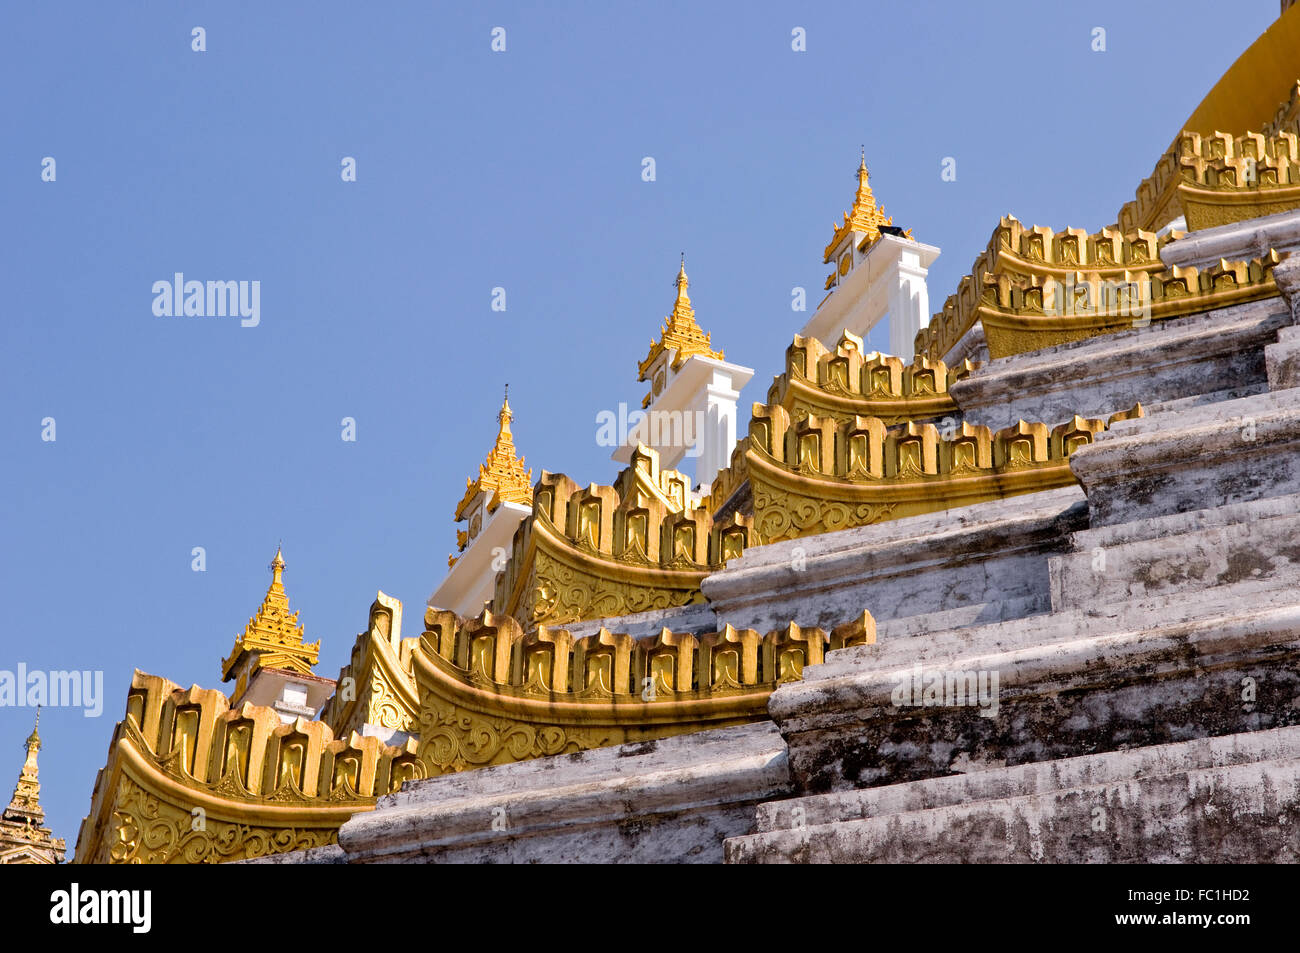 The ornate edge of Mahazedi Paya, Bago, Myanmar - Stock Image